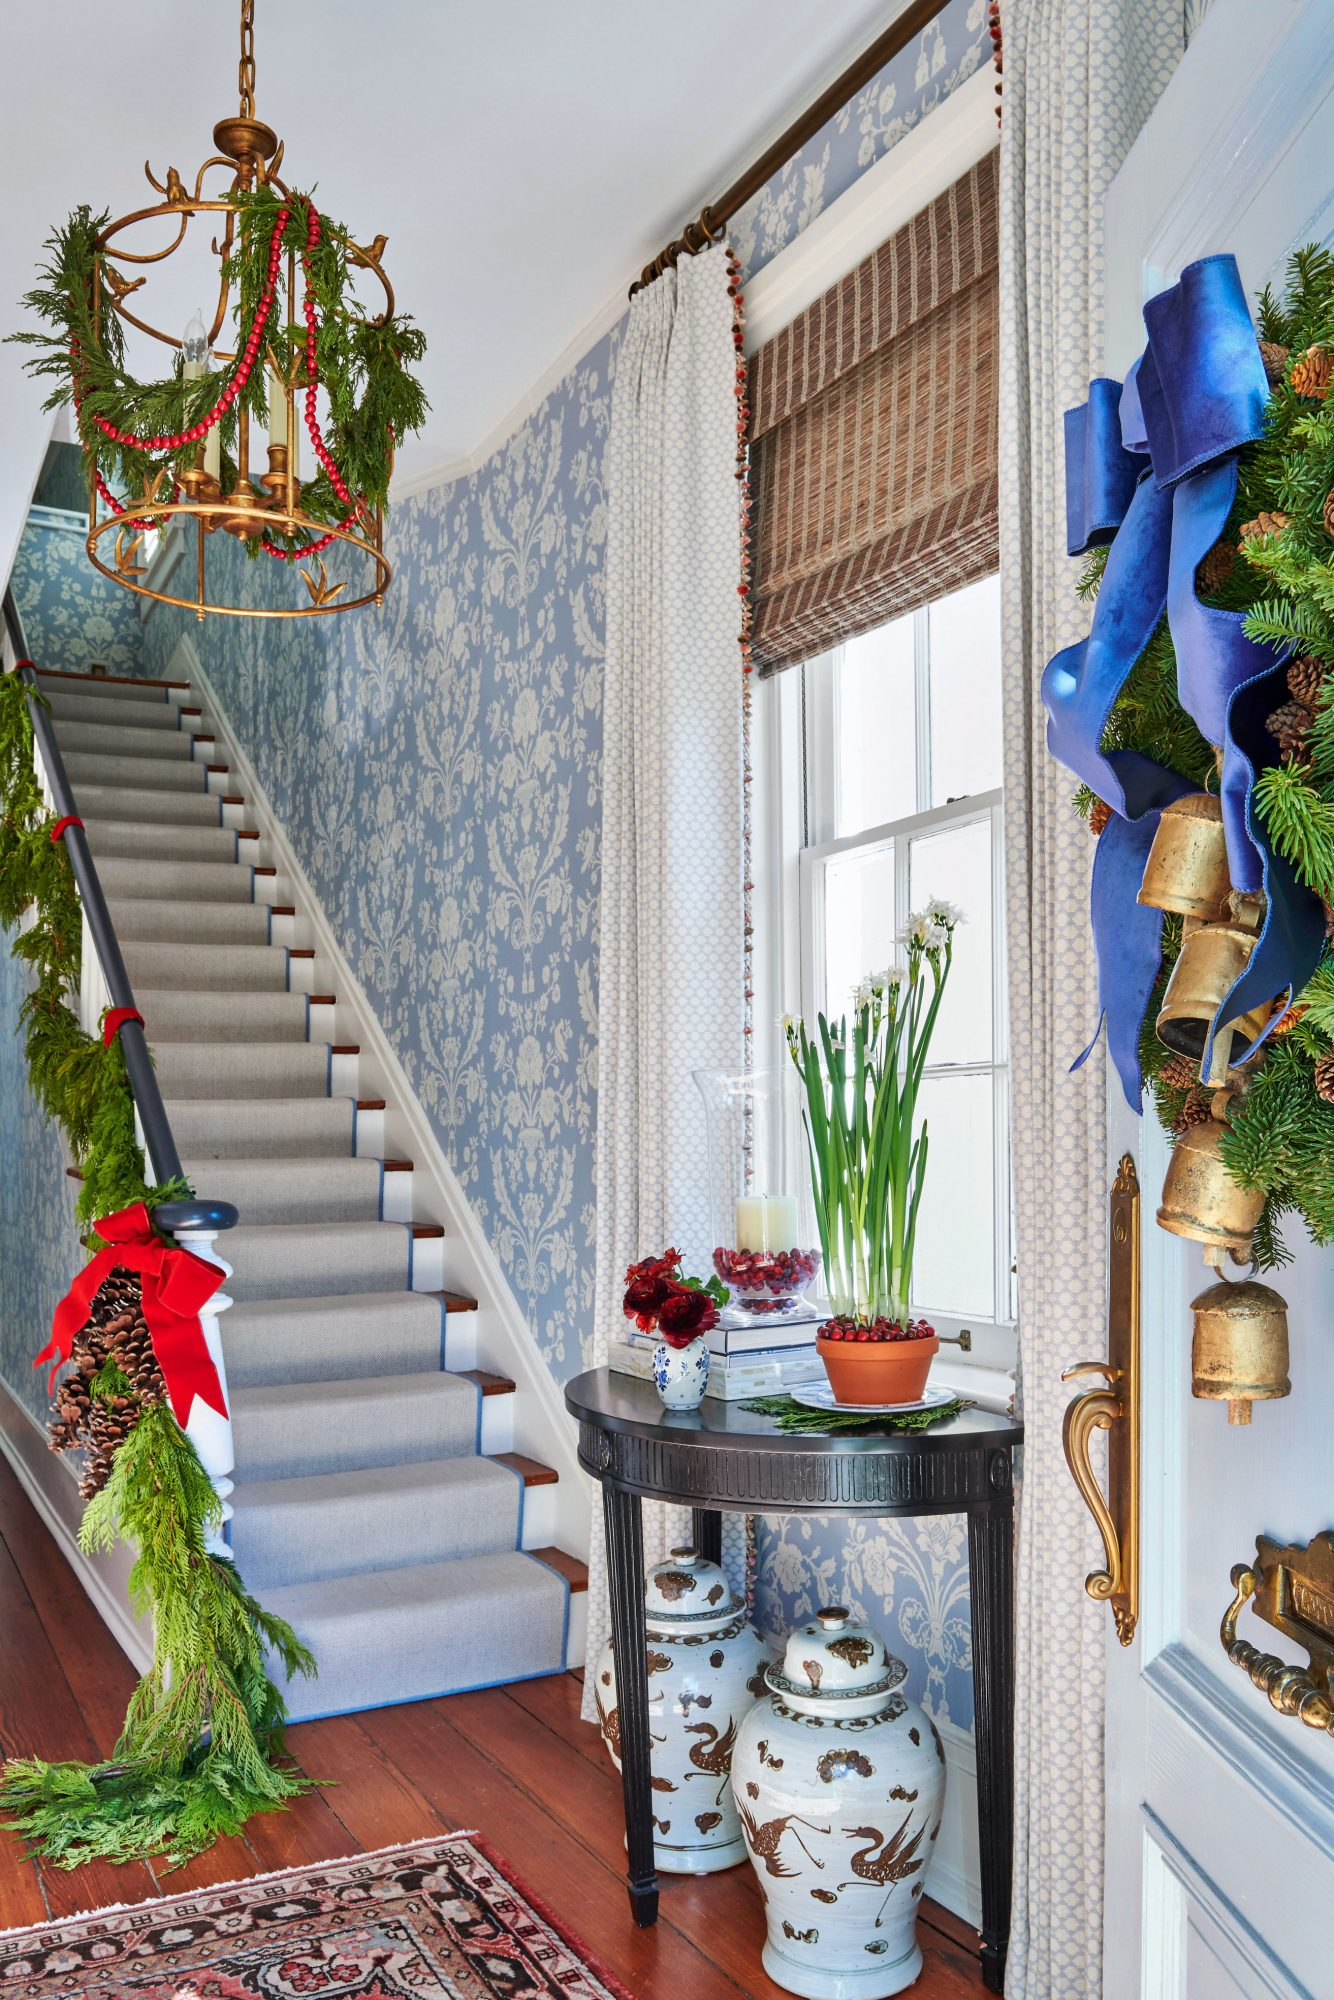 Blue and white foyer decorated for Christmas with greenery and red and blue ribbons